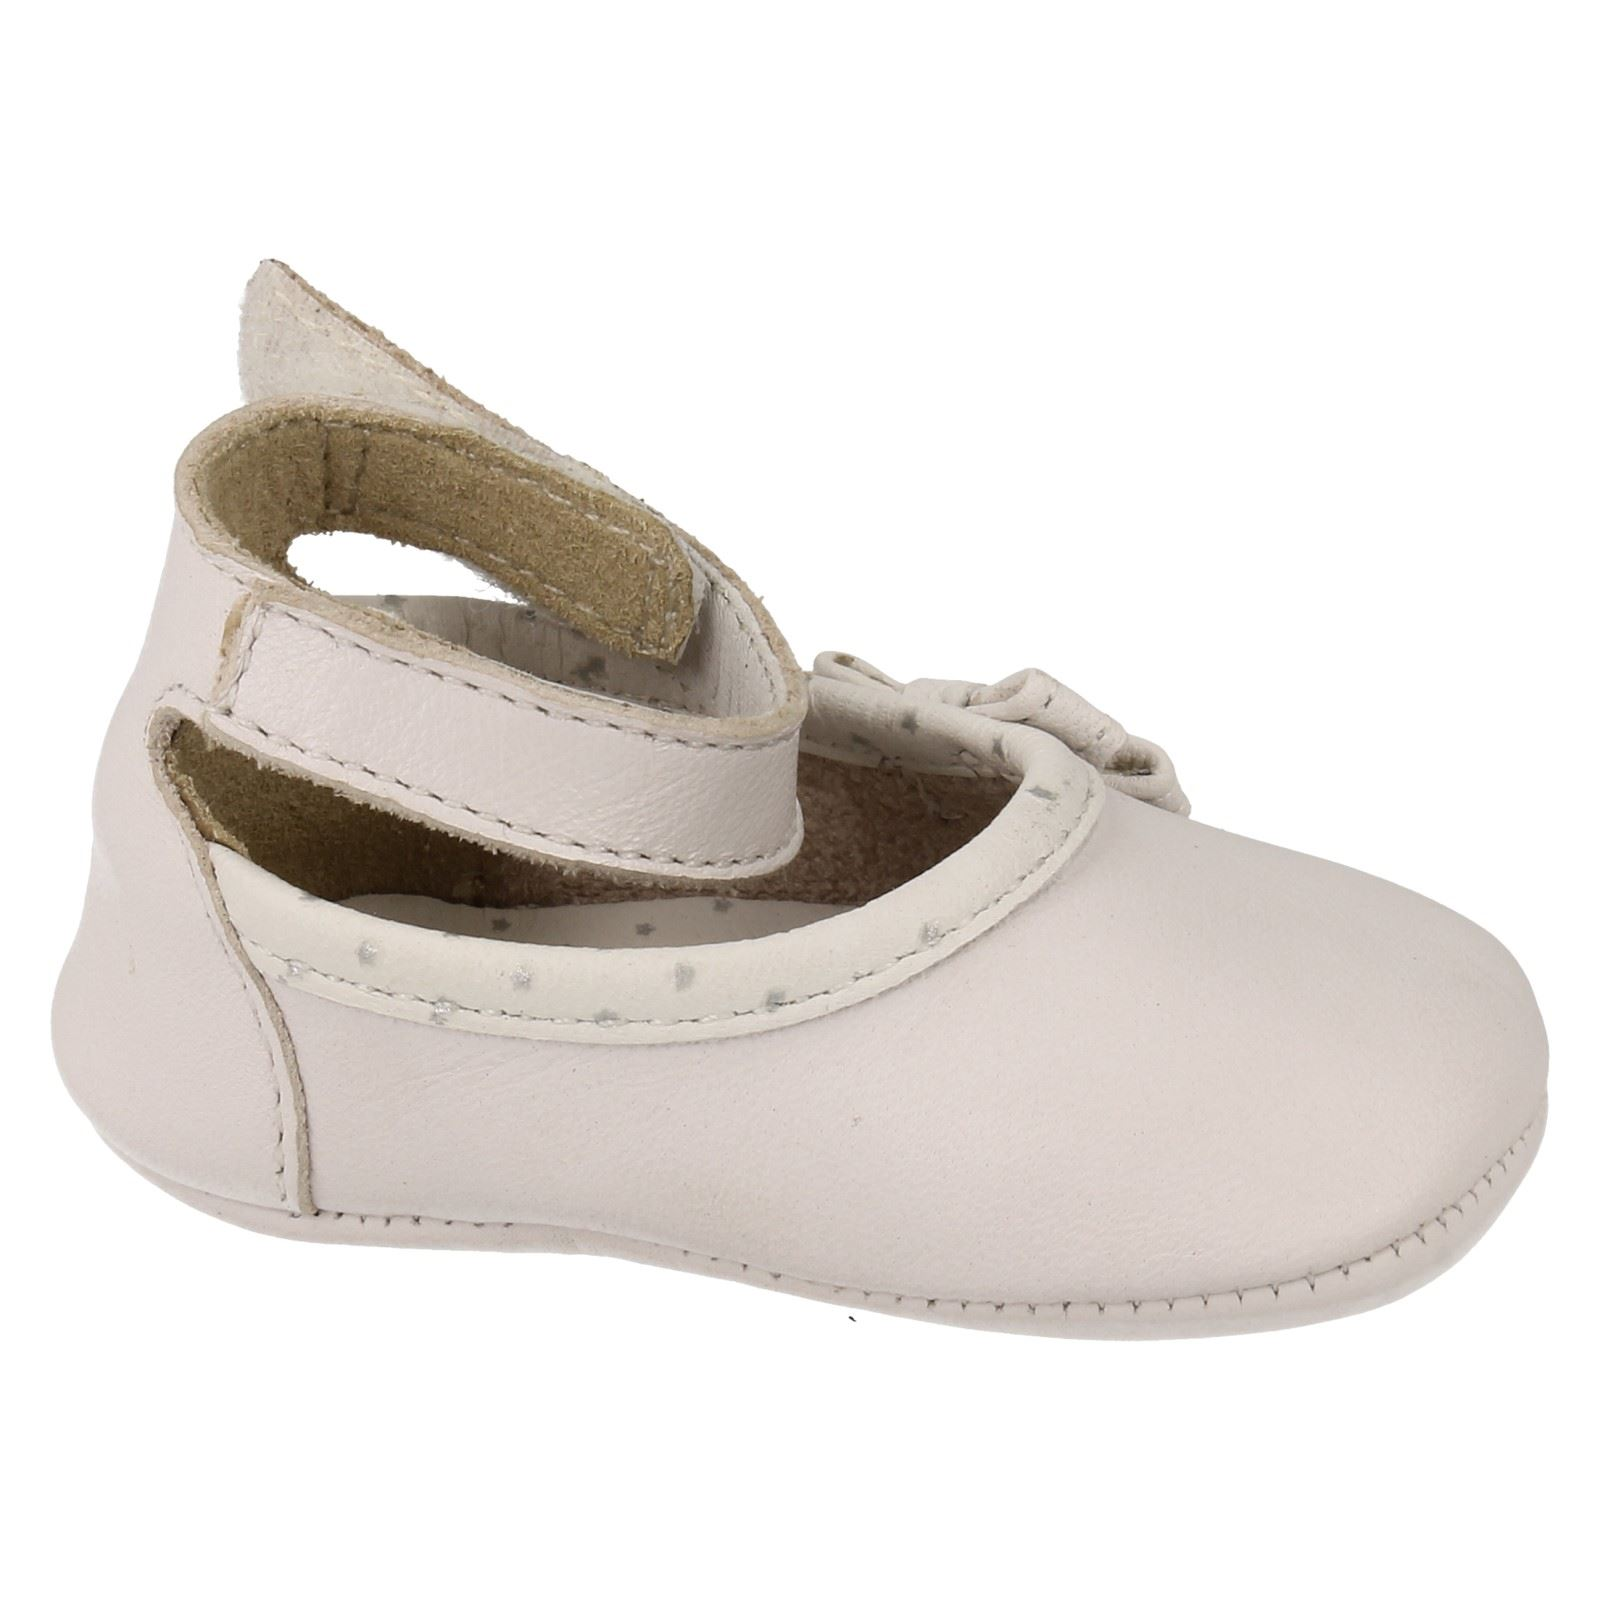 Baby Cruiser Shoes